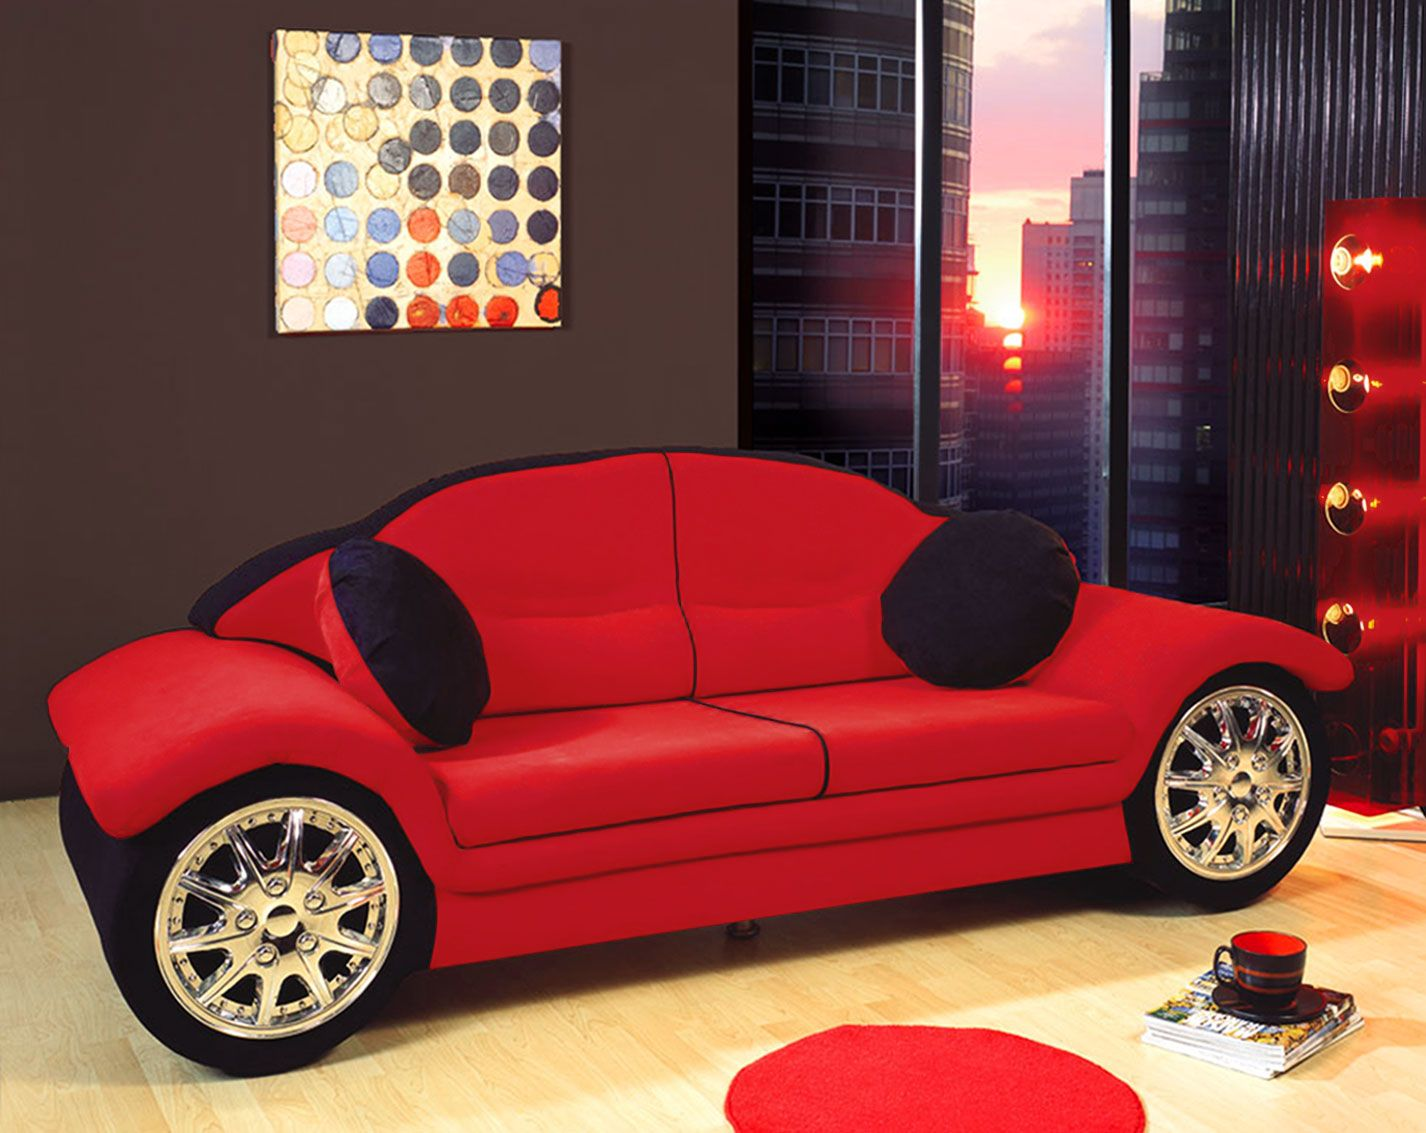 So Cool A Race Car Sofa For A Man Cave Sure To Please And